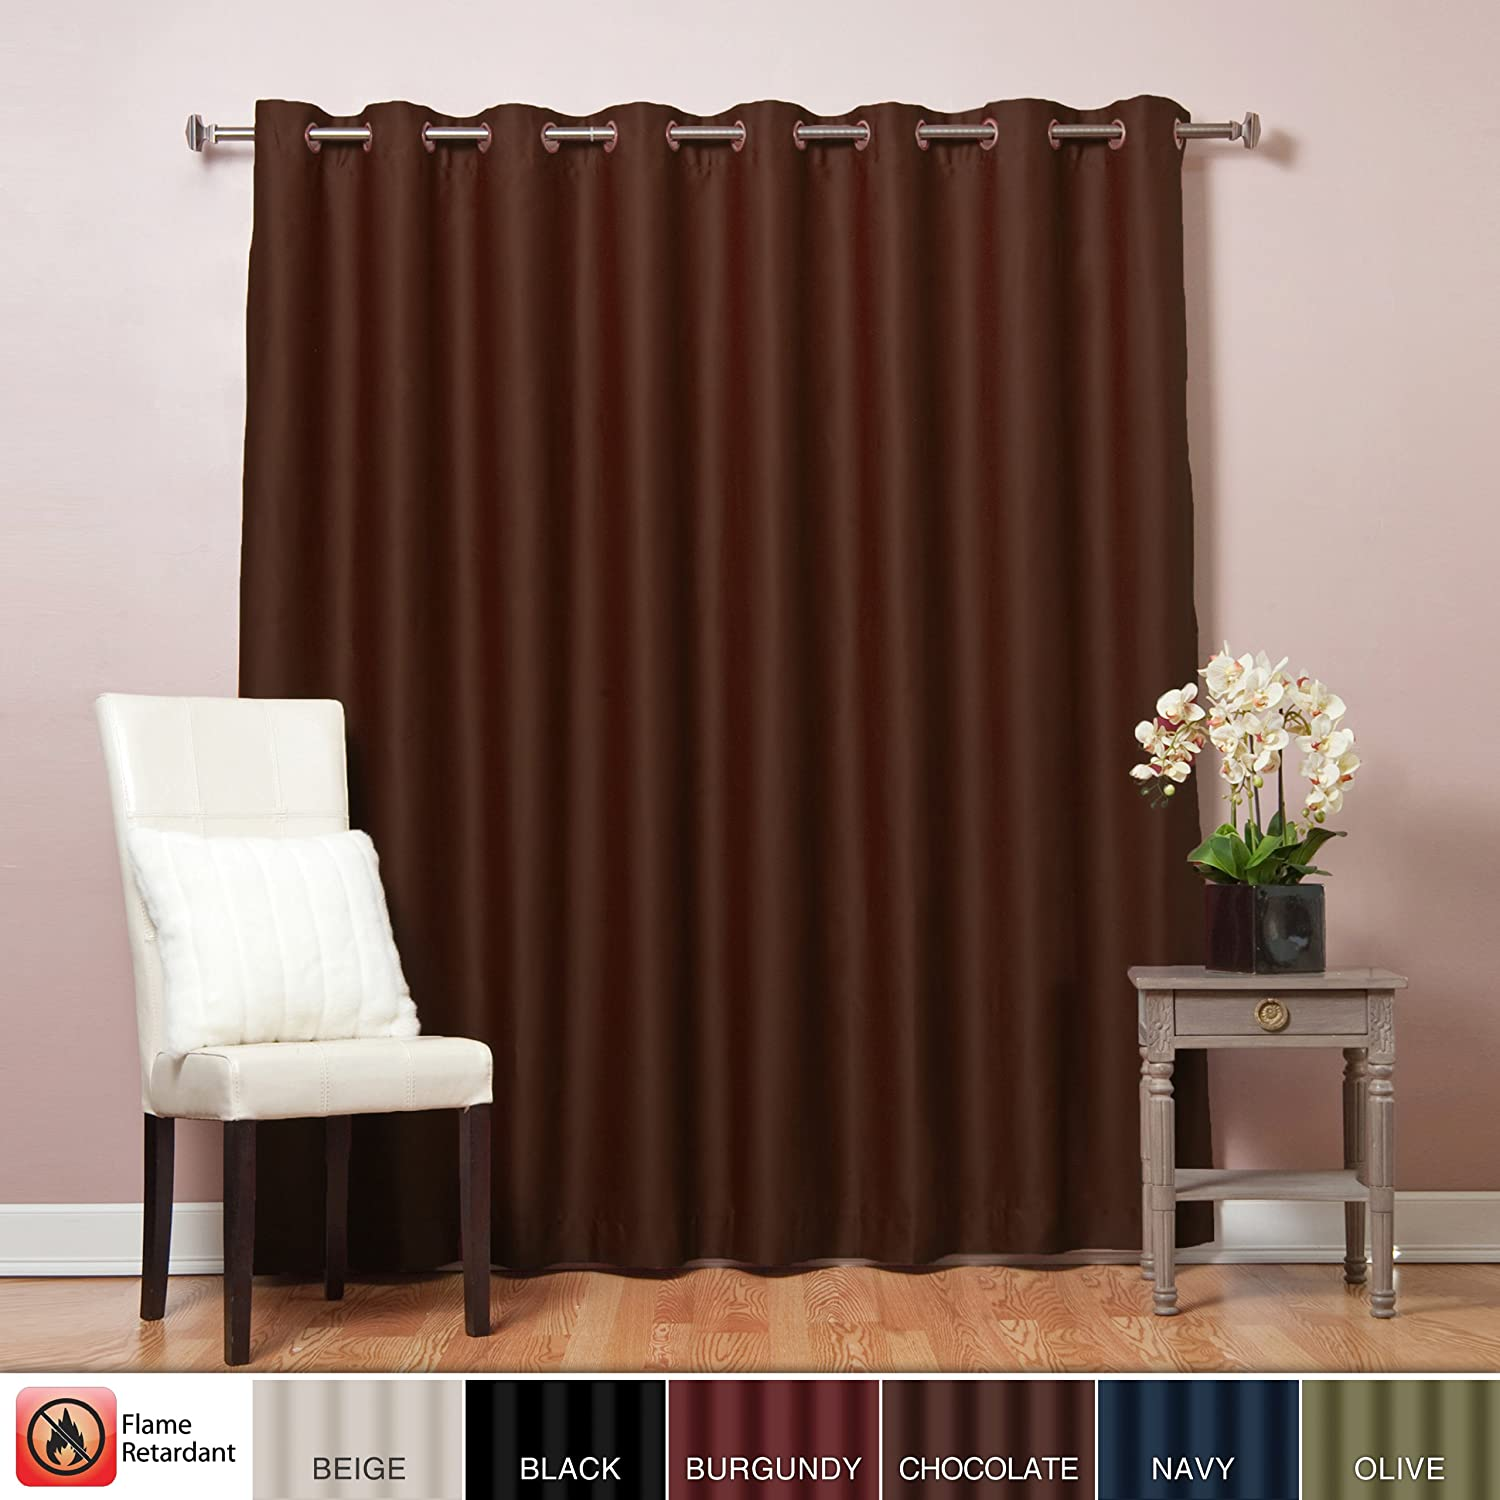 Blackout Curtains For Sliding Glass Door Blackout Curtains for Pa